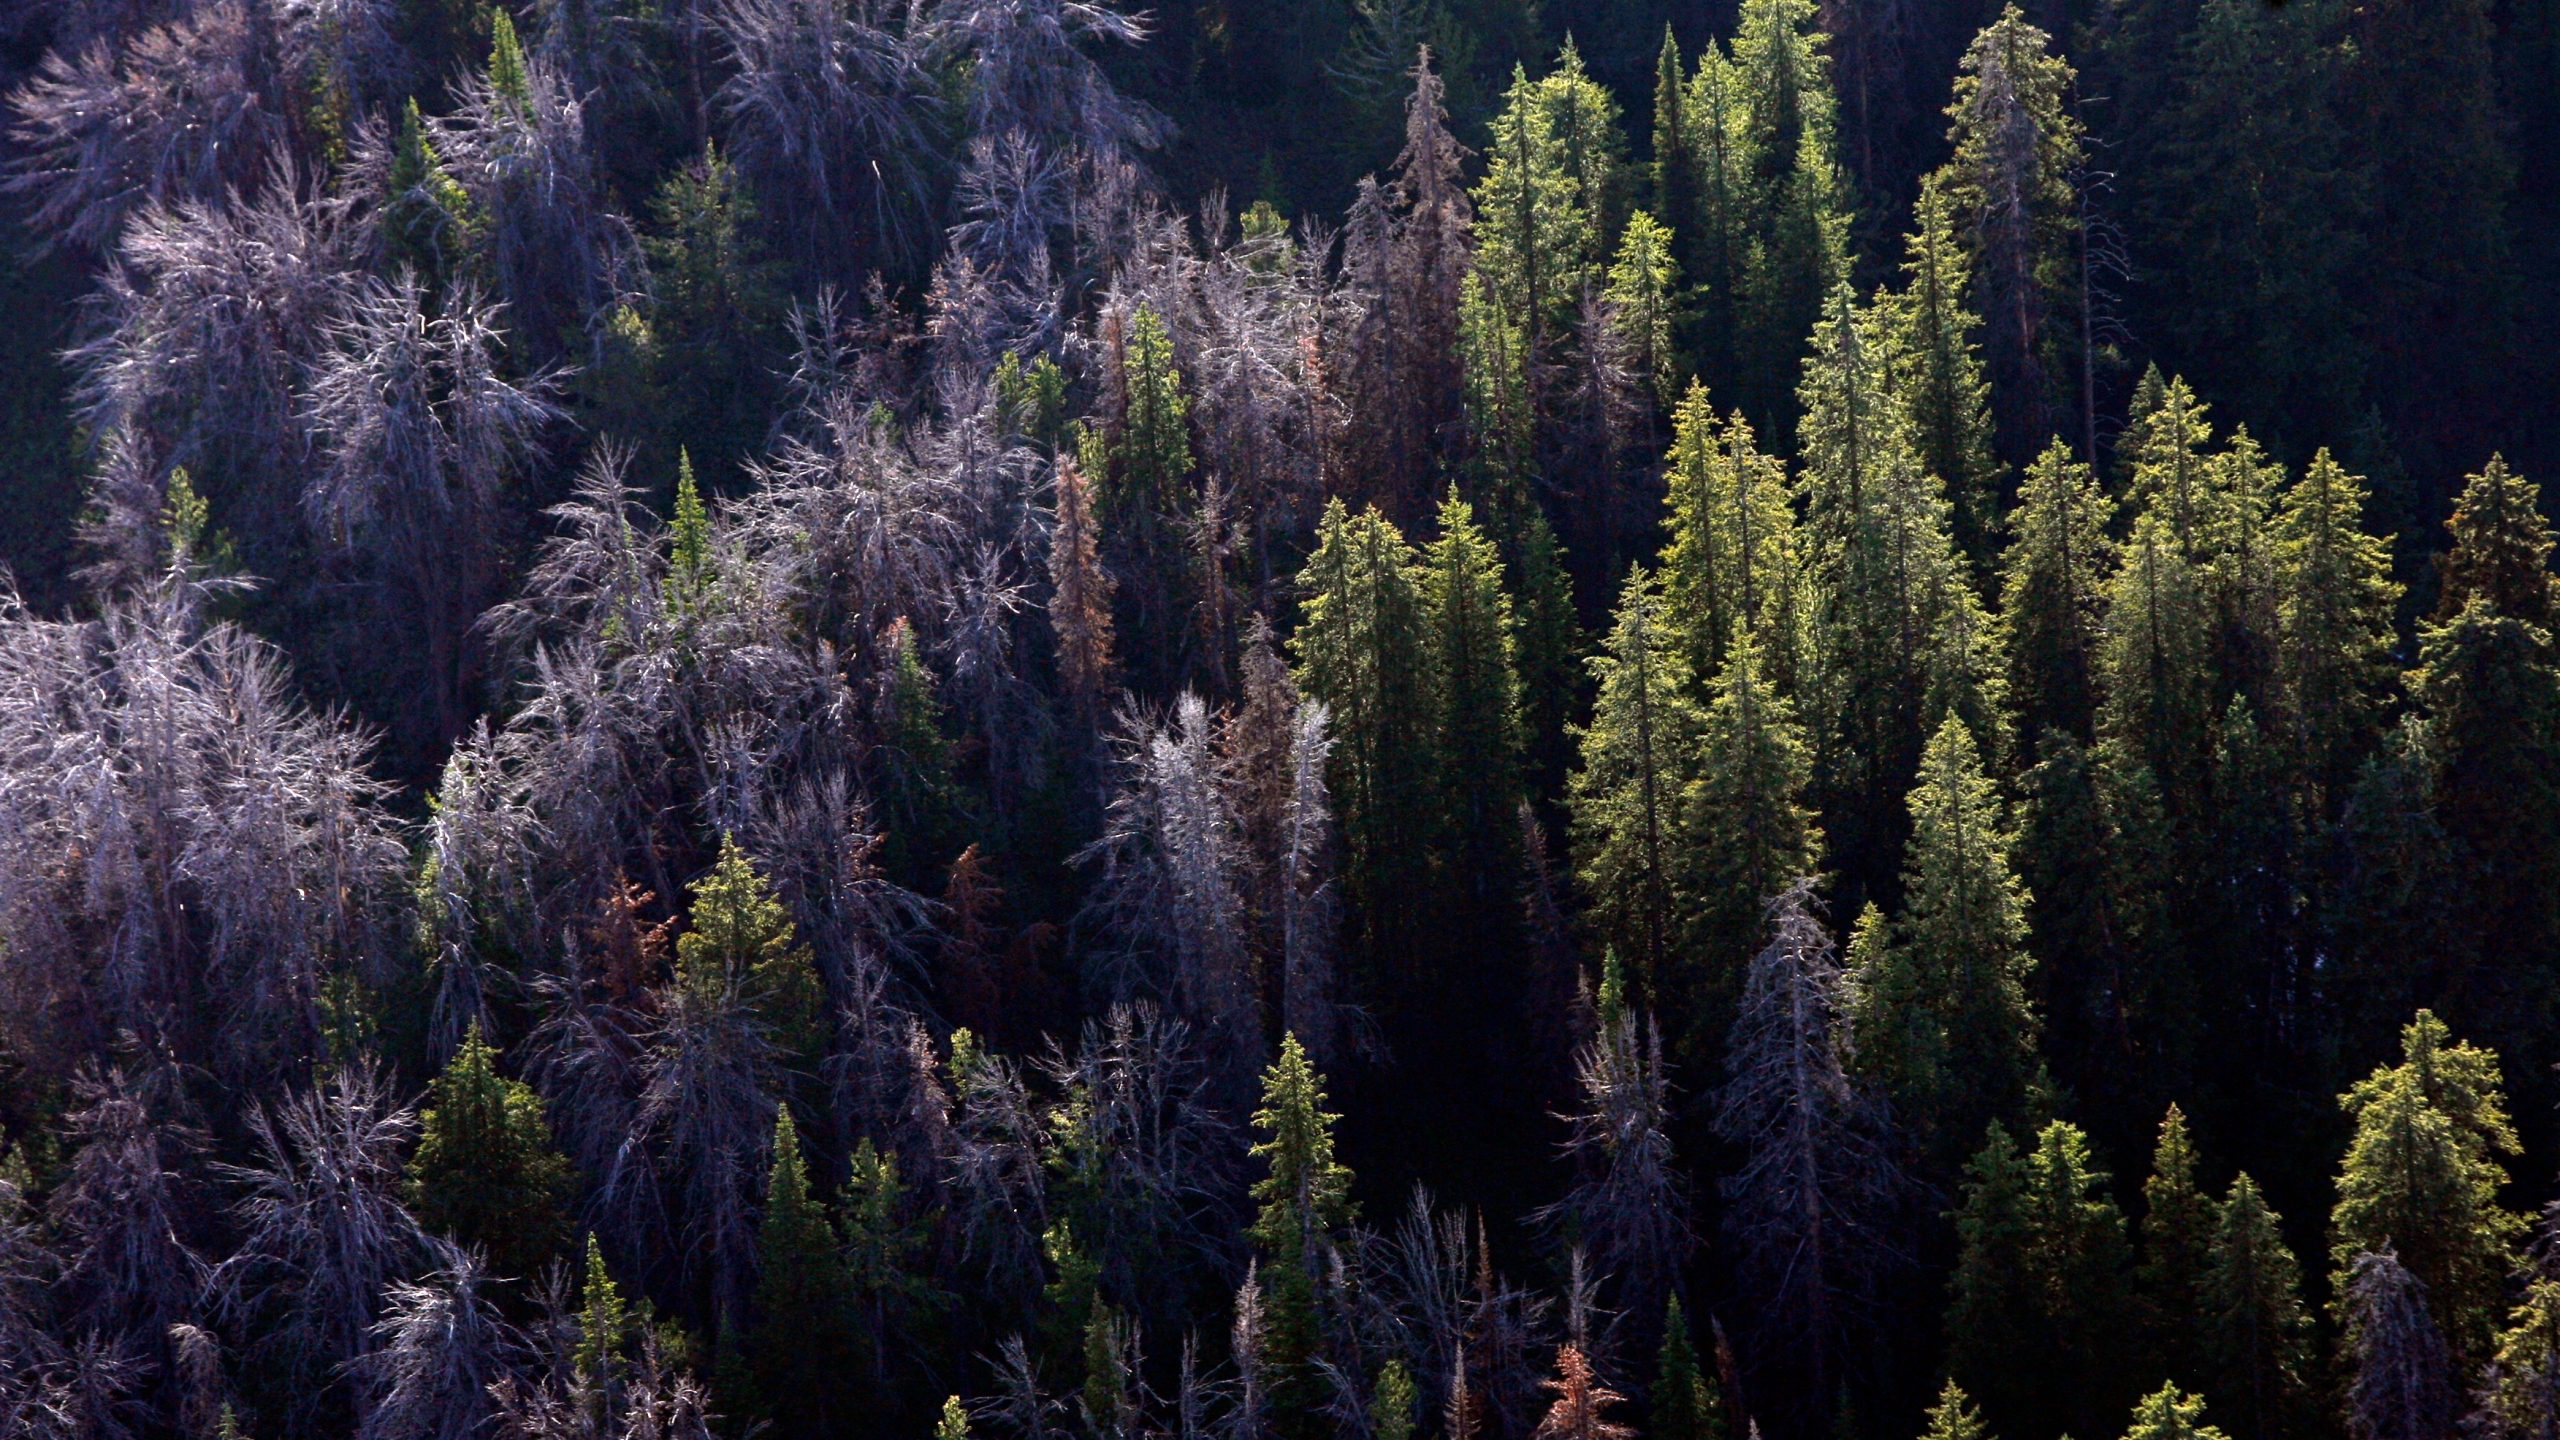 This Aug. 1, 2011 file photo, shows whitebark pine that have succumbed to mountain pine beetles through the Gros Ventre area east of Jackson Hole, Wyo. U.S. officials say climate change, beetles and a deadly fungus are imperiling the long-term survival of the high-elevation tree found in the western U.S. (Rick Egan/The Salt Lake Tribune via AP, File)